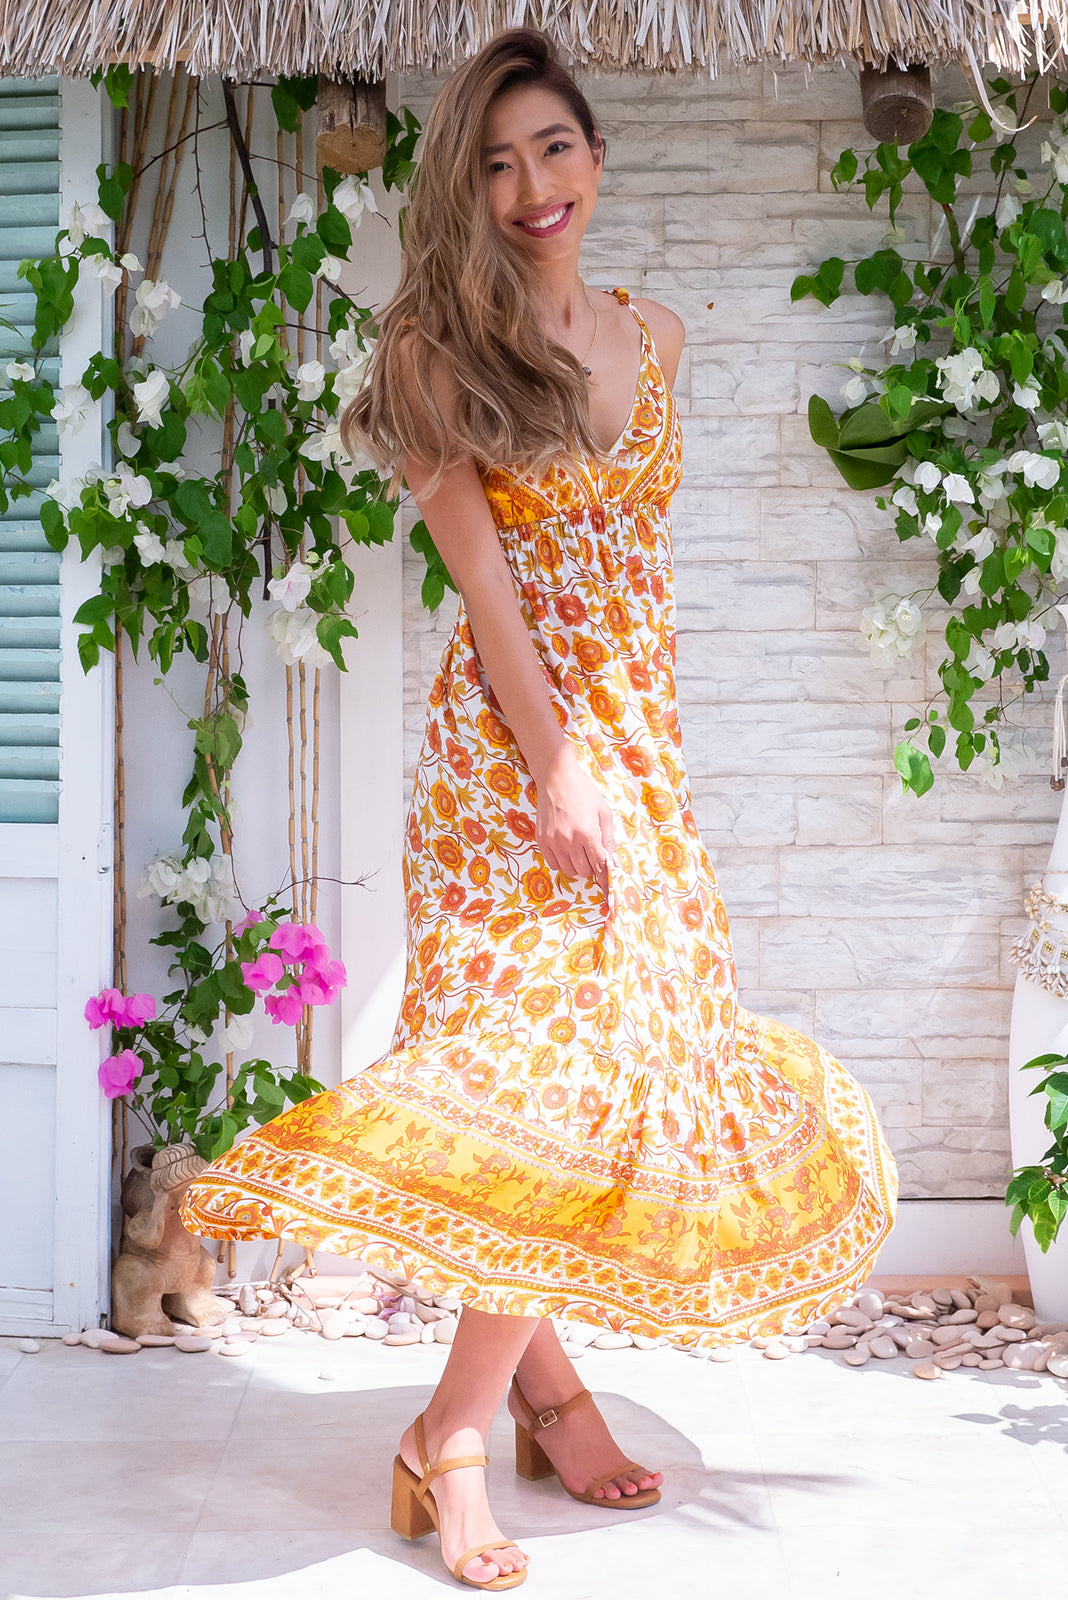 Sapphire Citrus Blooms Dress, true bohemian dream style features elasticated under bust, empire line, sleeveless with adjustable tie up straps, side pockets, white base with gold, mustard and terracotta floral print in woven 100% rayon.